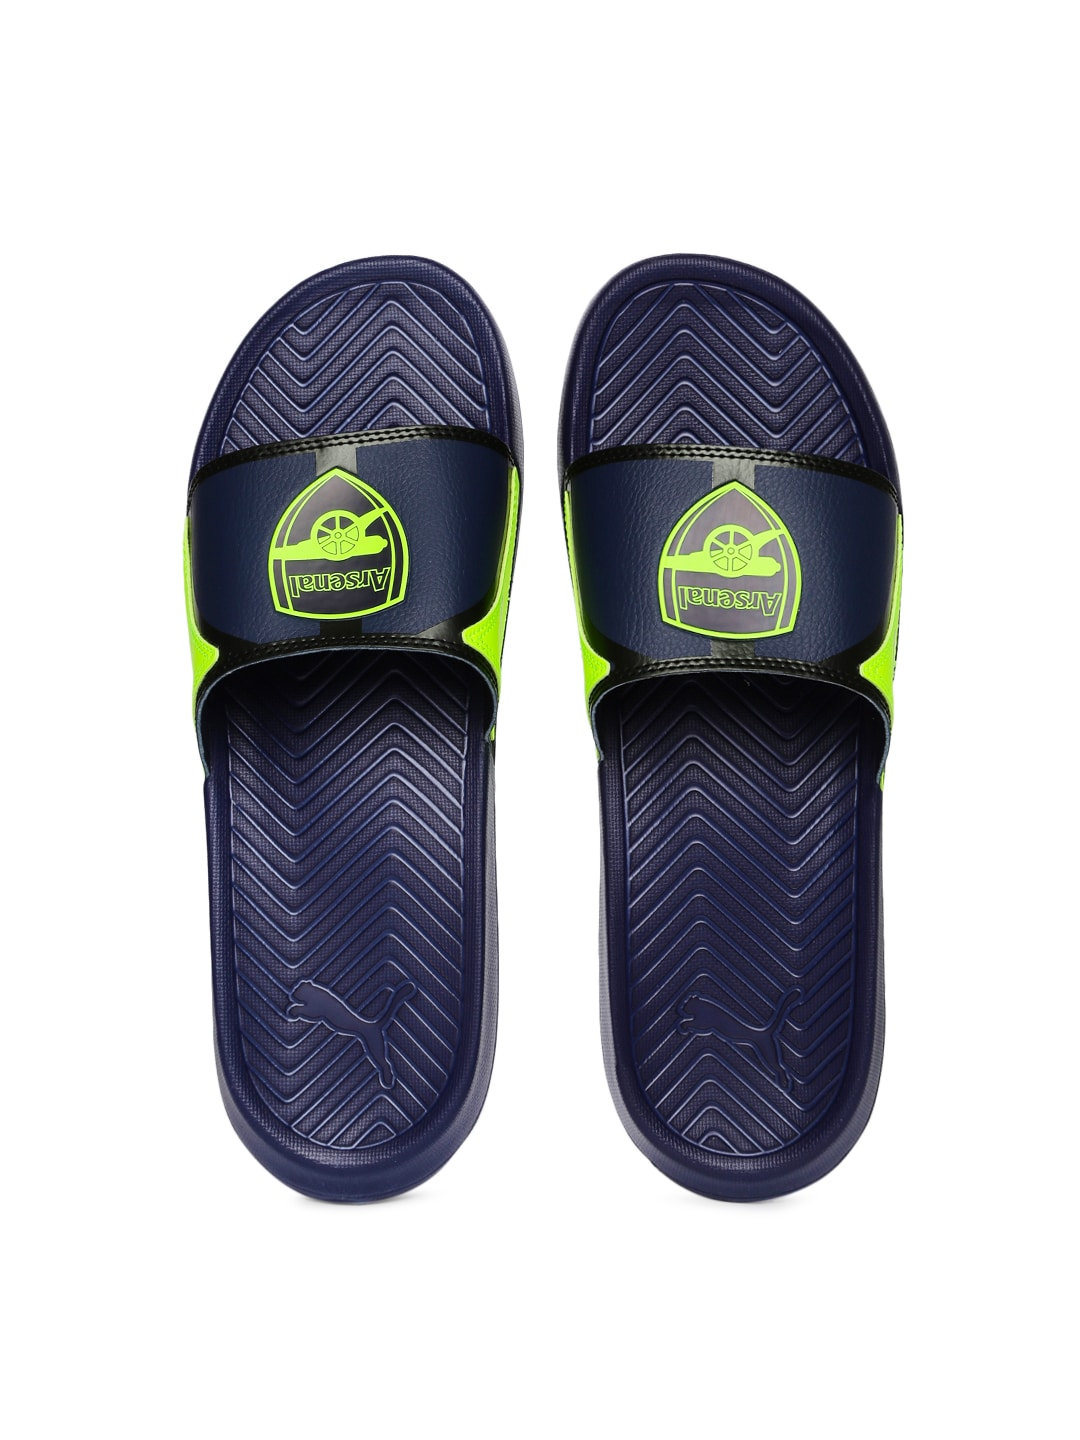 6dcb17c46bc5 Puma Slip Only Flip Flops Sandals - Buy Puma Slip Only Flip Flops Sandals  online in India